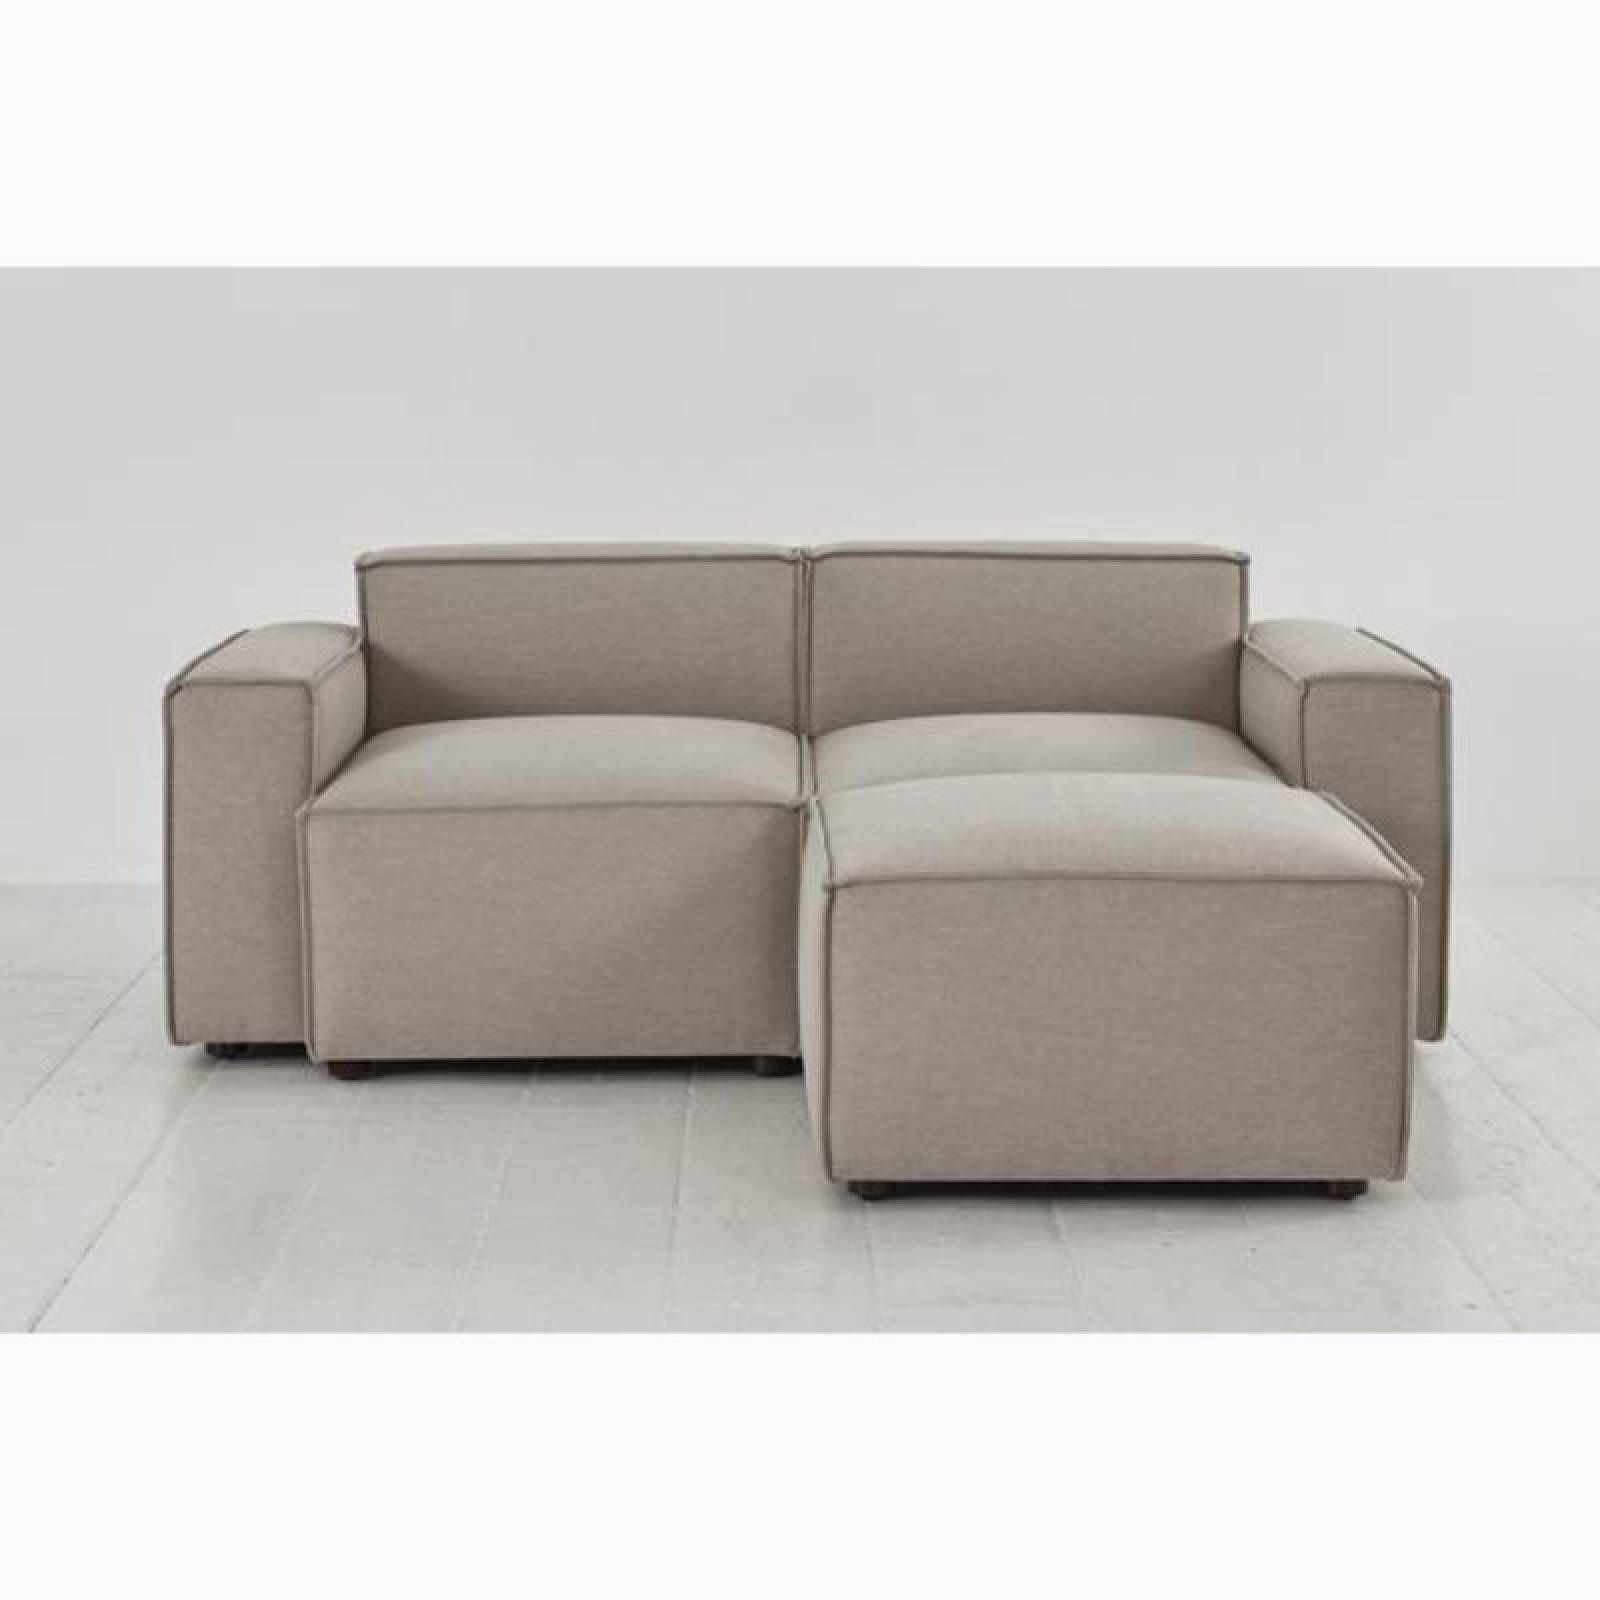 Swyft - Model 03 - 2 Seater Sofa - Right Chaise - Linen Pumice